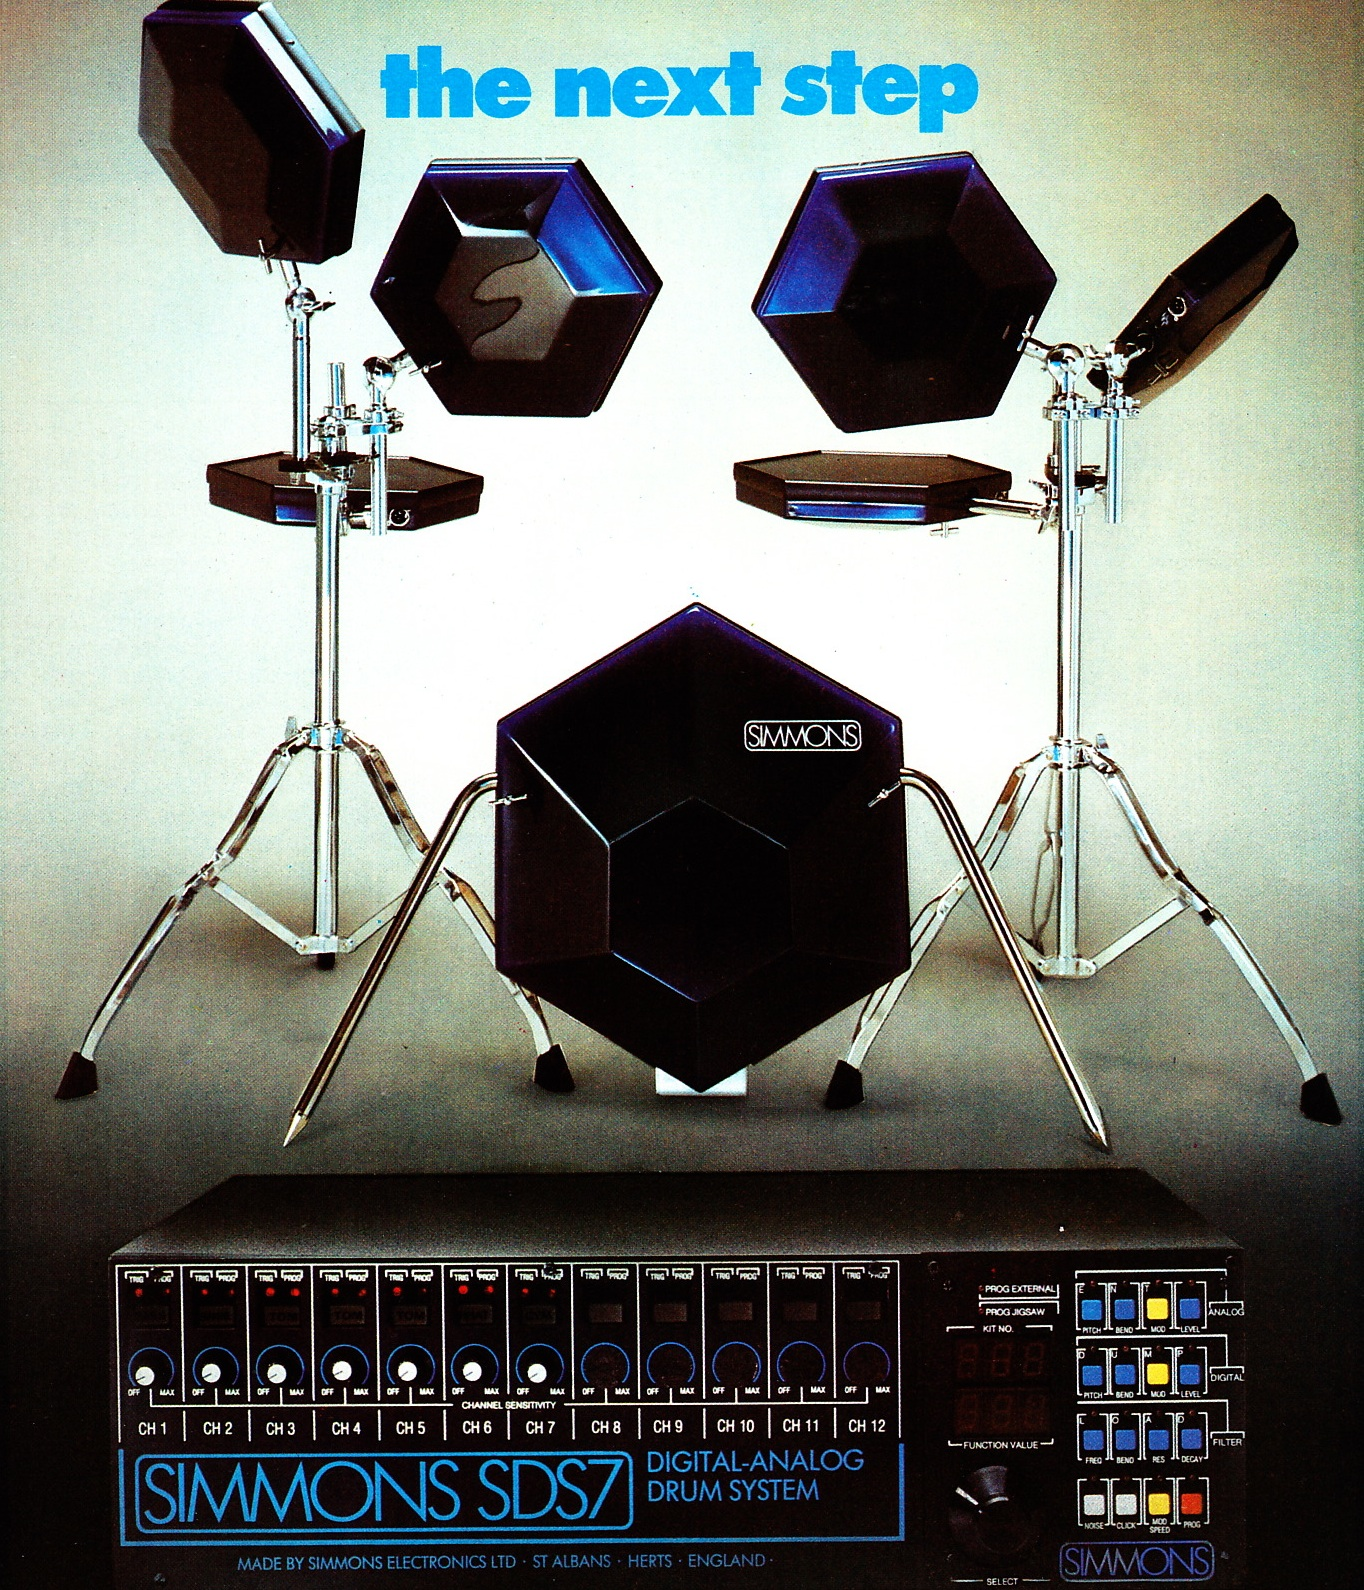 simmons electronic drums. simmons_claptrap_1984 simmons_sds7_1984 tama_techstar_1984 mpc_drums_1984 pearl_syncussionx_1986 simmons_1985 simmons electronic drums